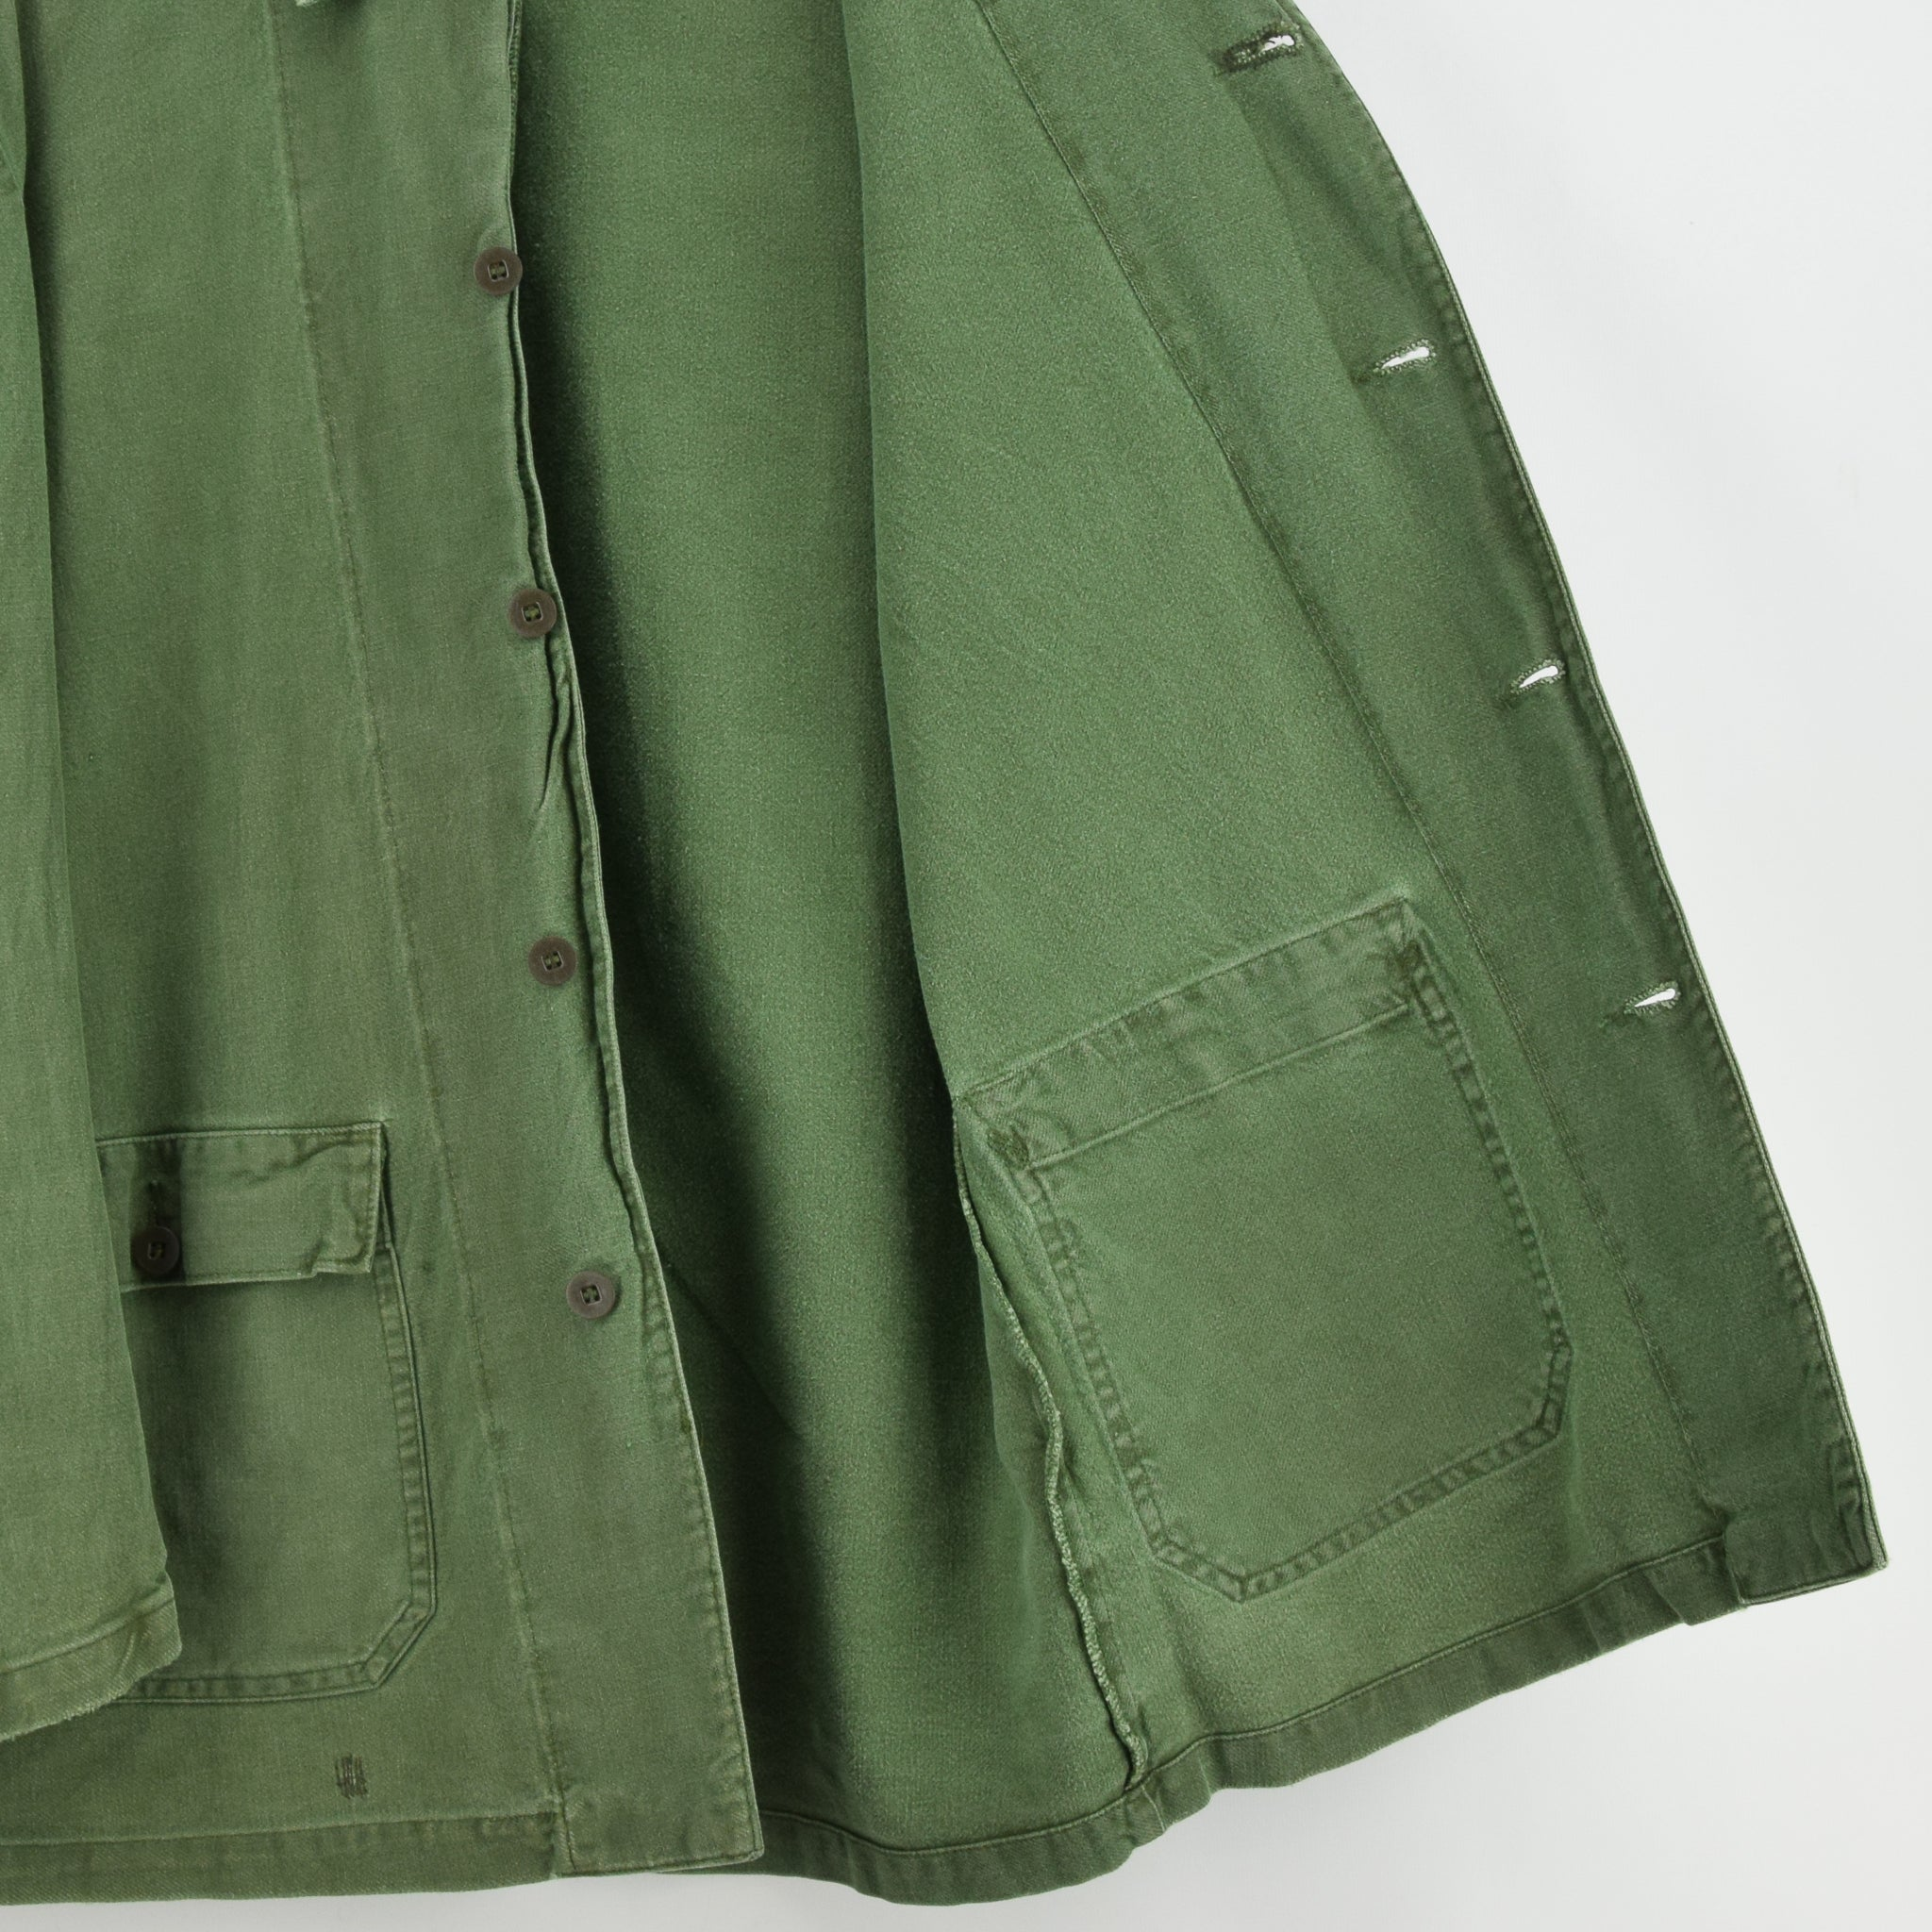 Vintage Swedish Worker Style Distressed Green Military Cotton Field Jacket M / L lining